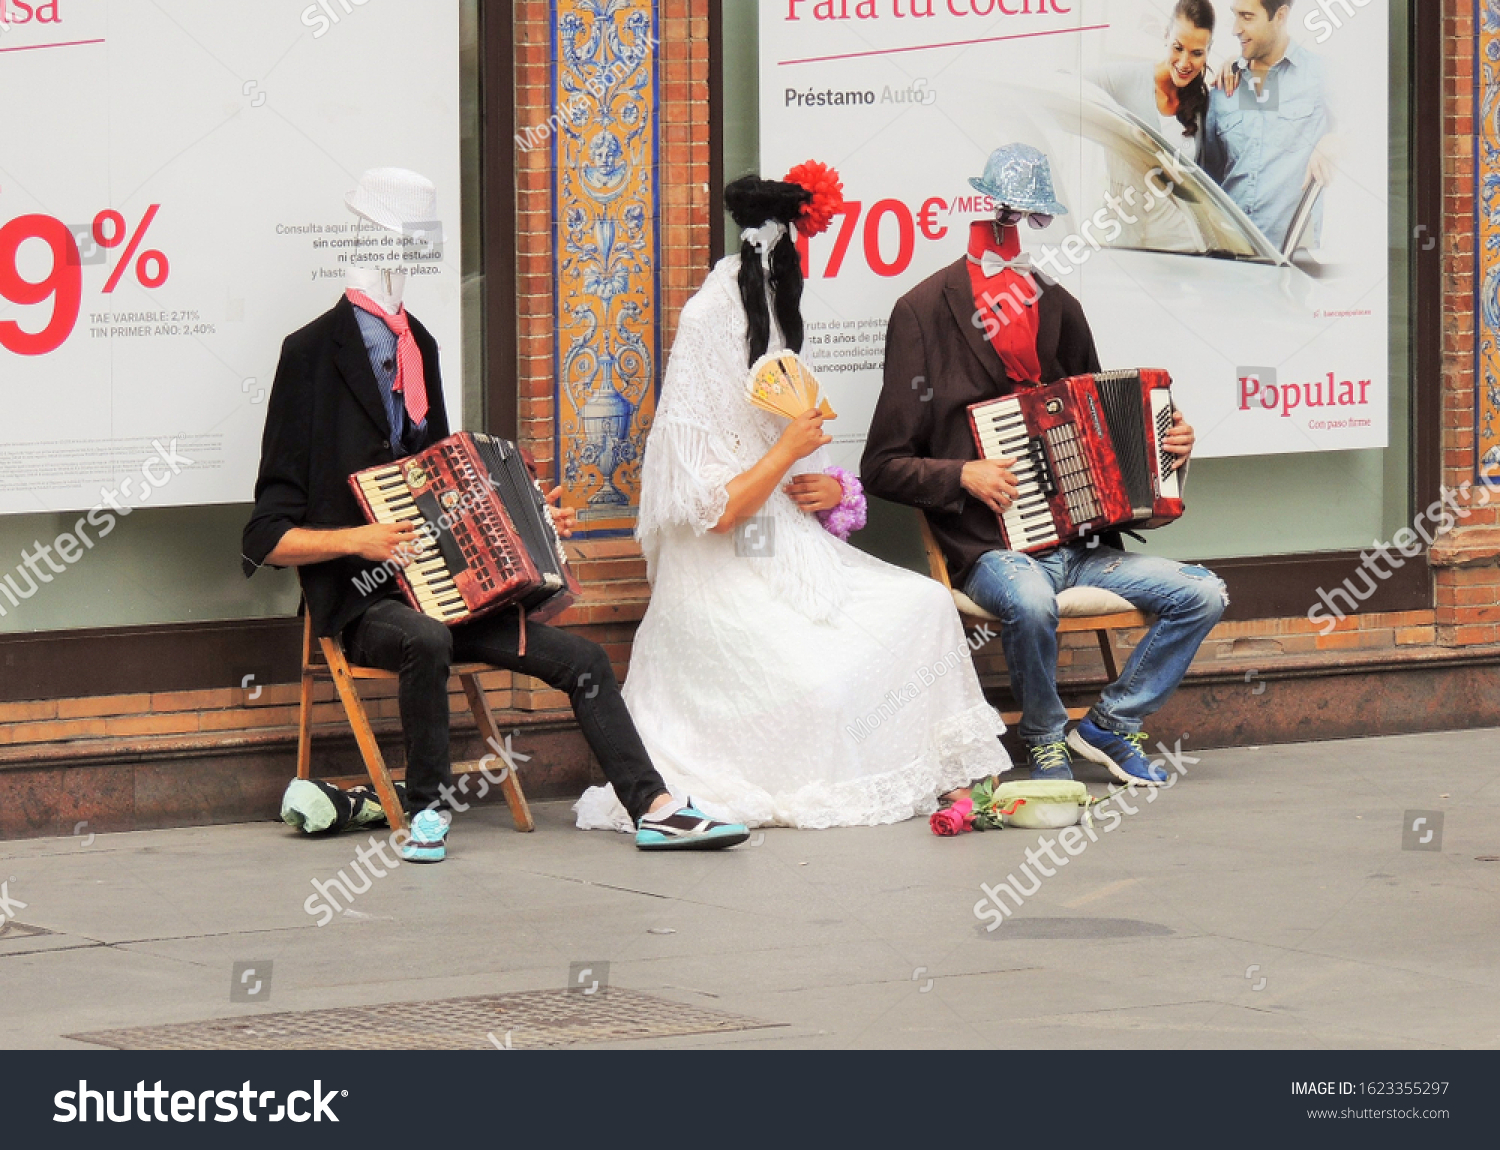 a funny group of performers in Sevilla in June 2015